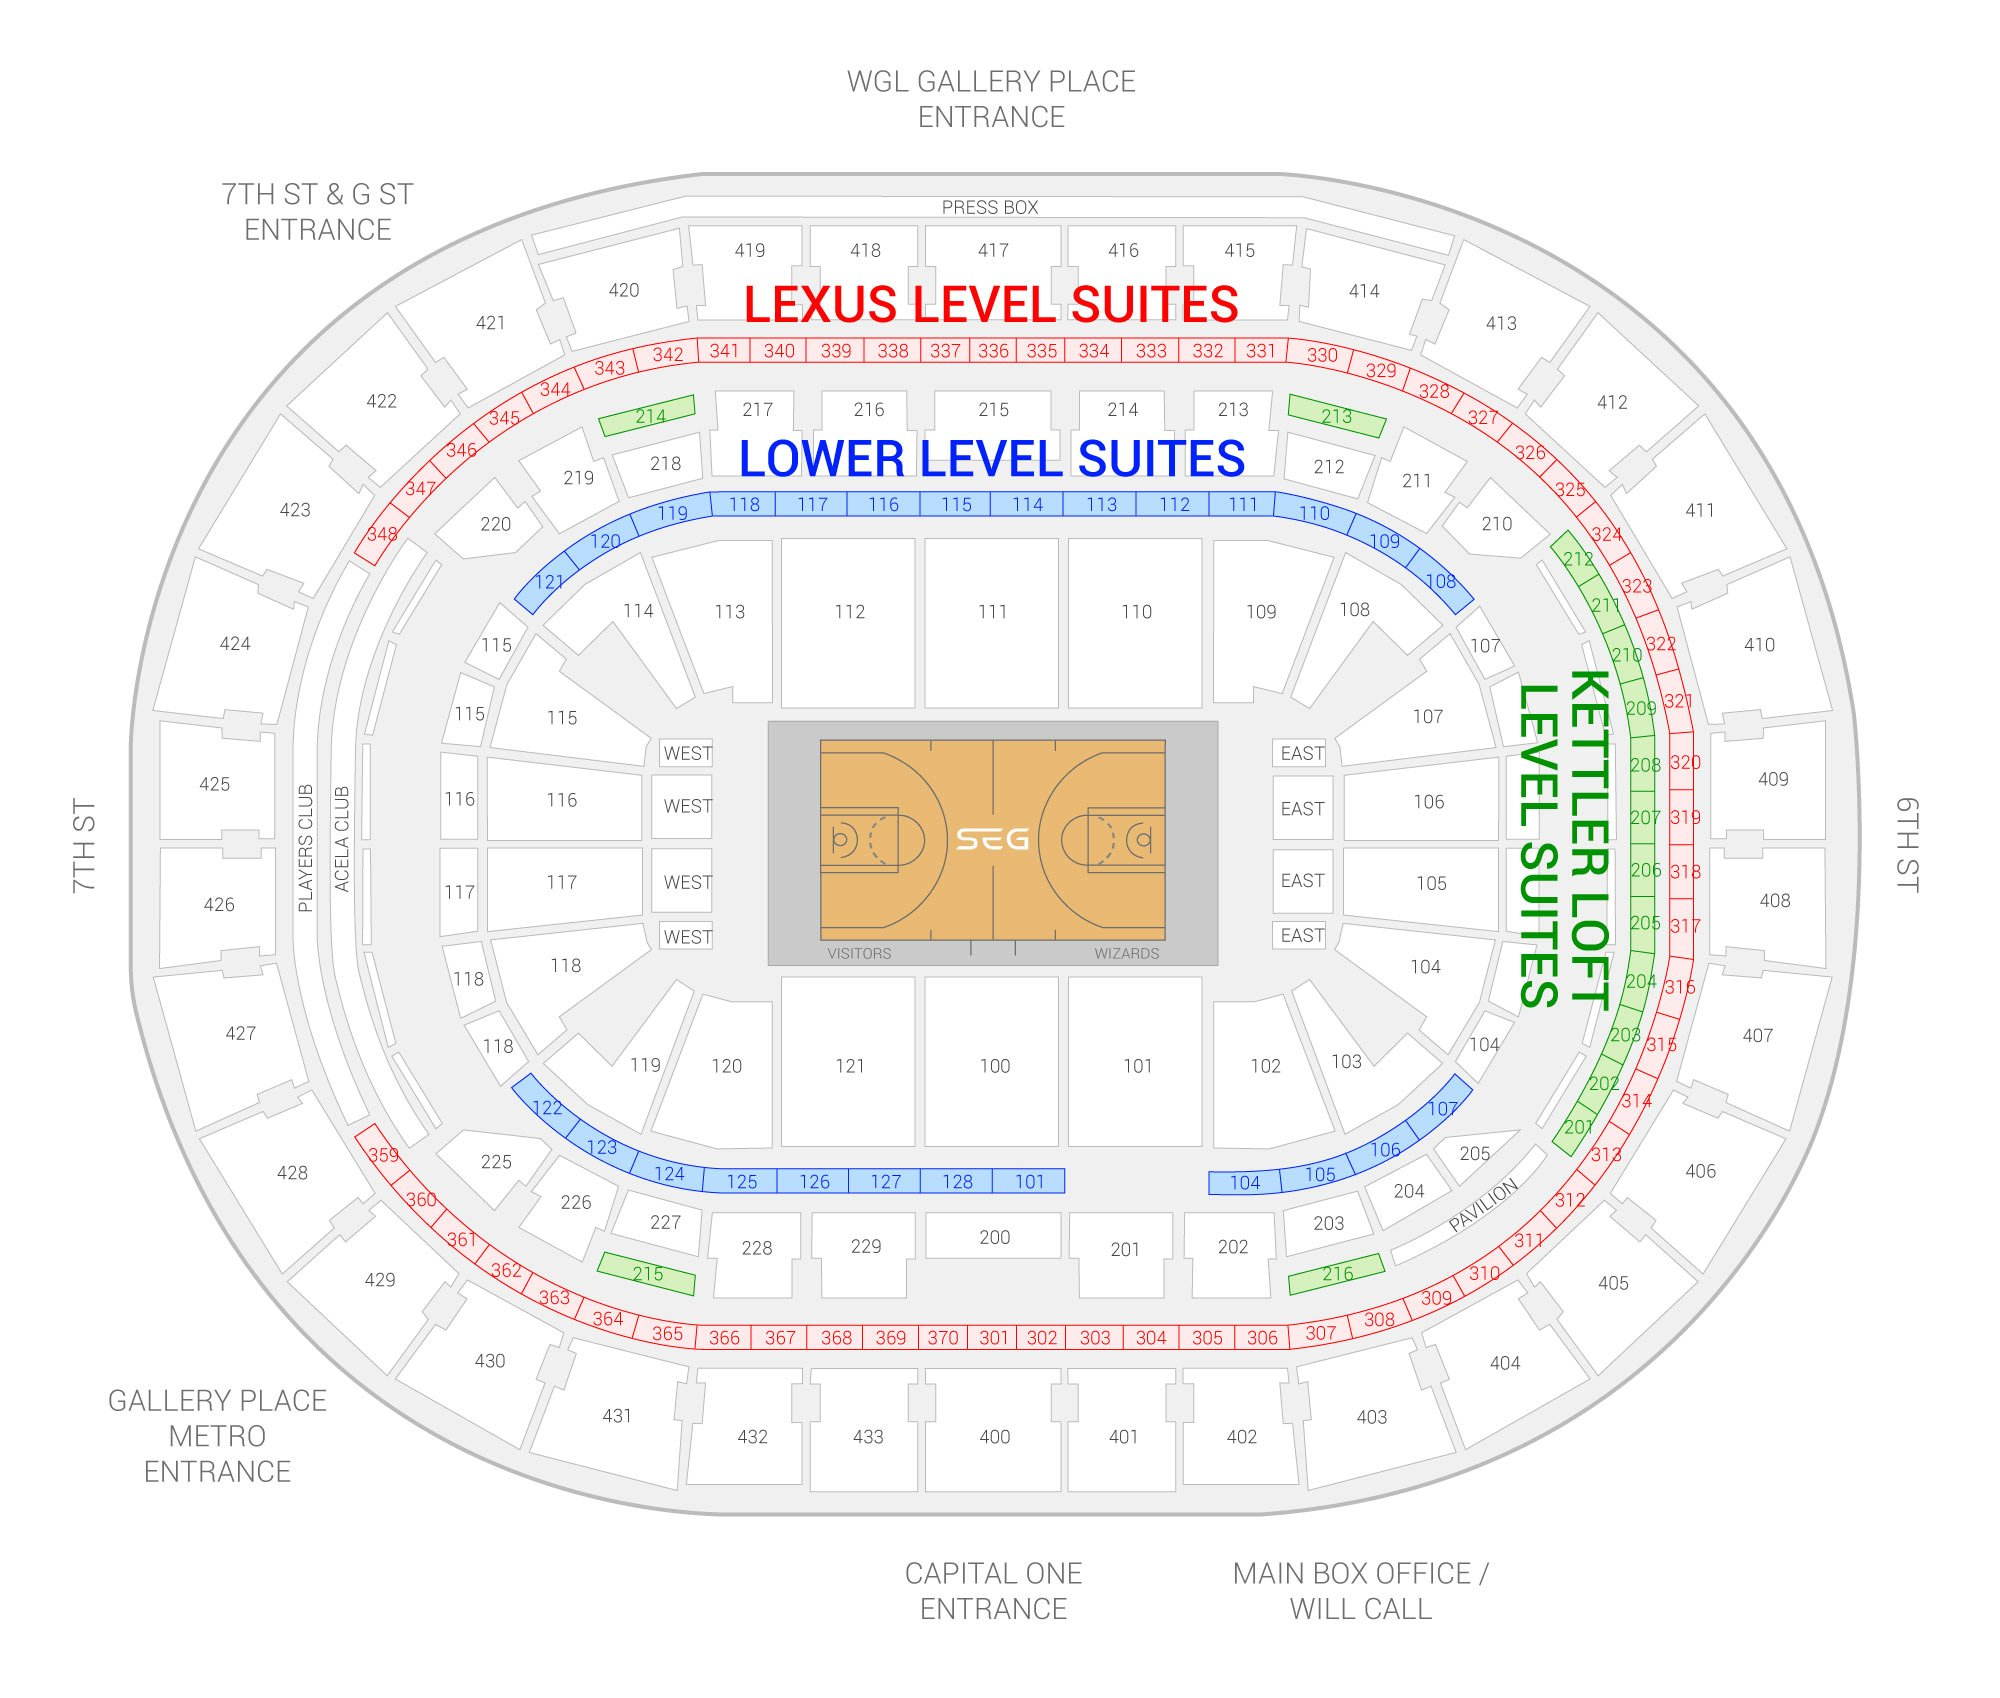 Capital One Arena / Washington Wizards Suite Map and Seating Chart